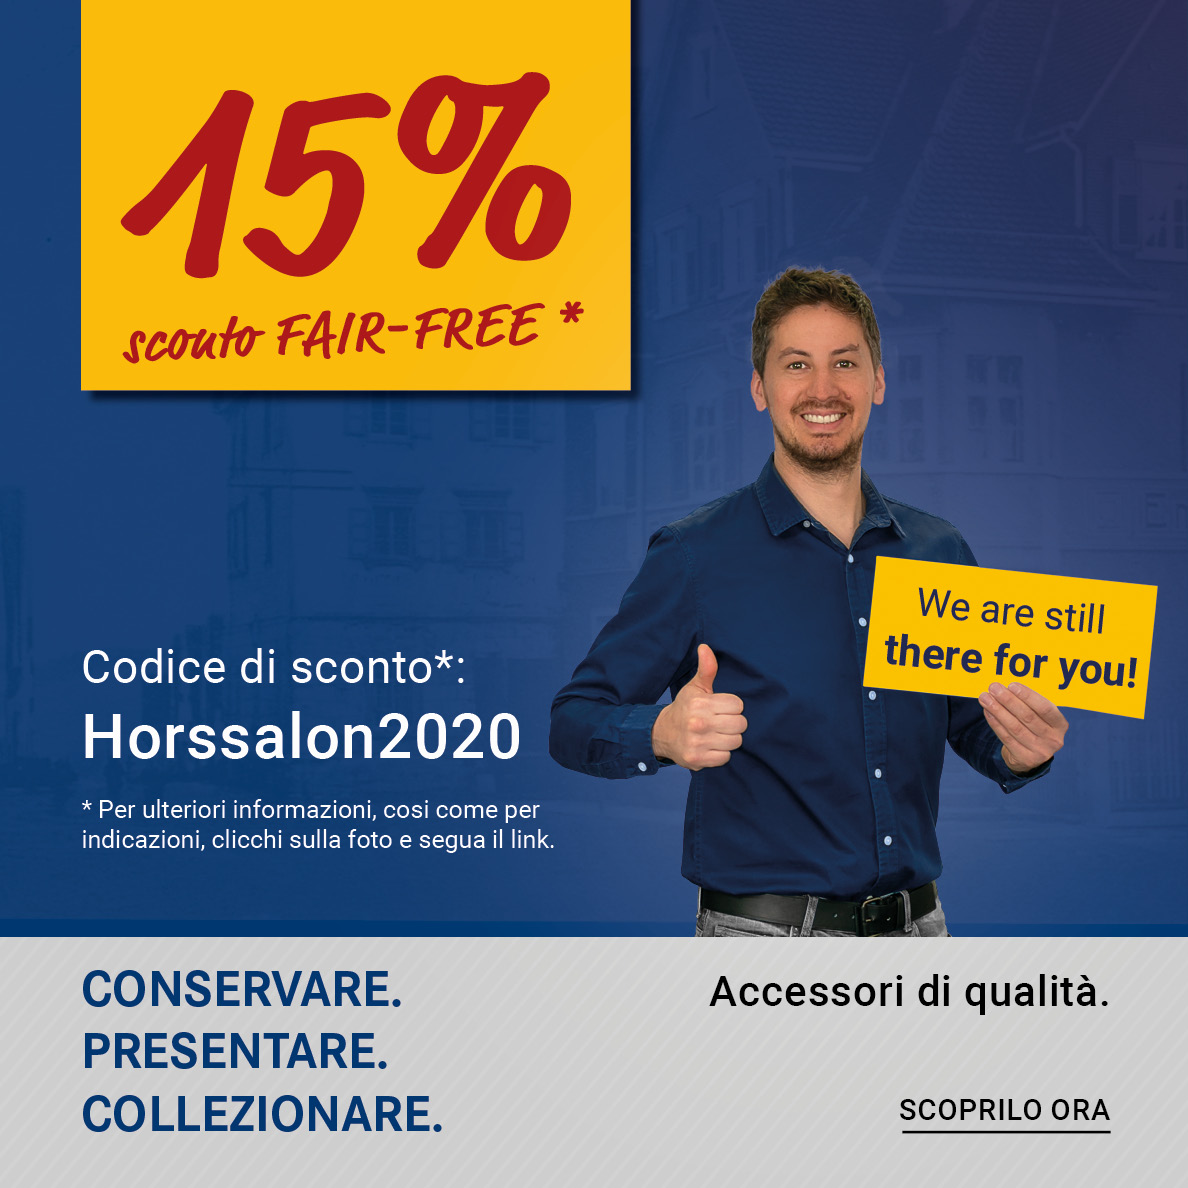 sconto-FAIR-FREE: Horssalon2020